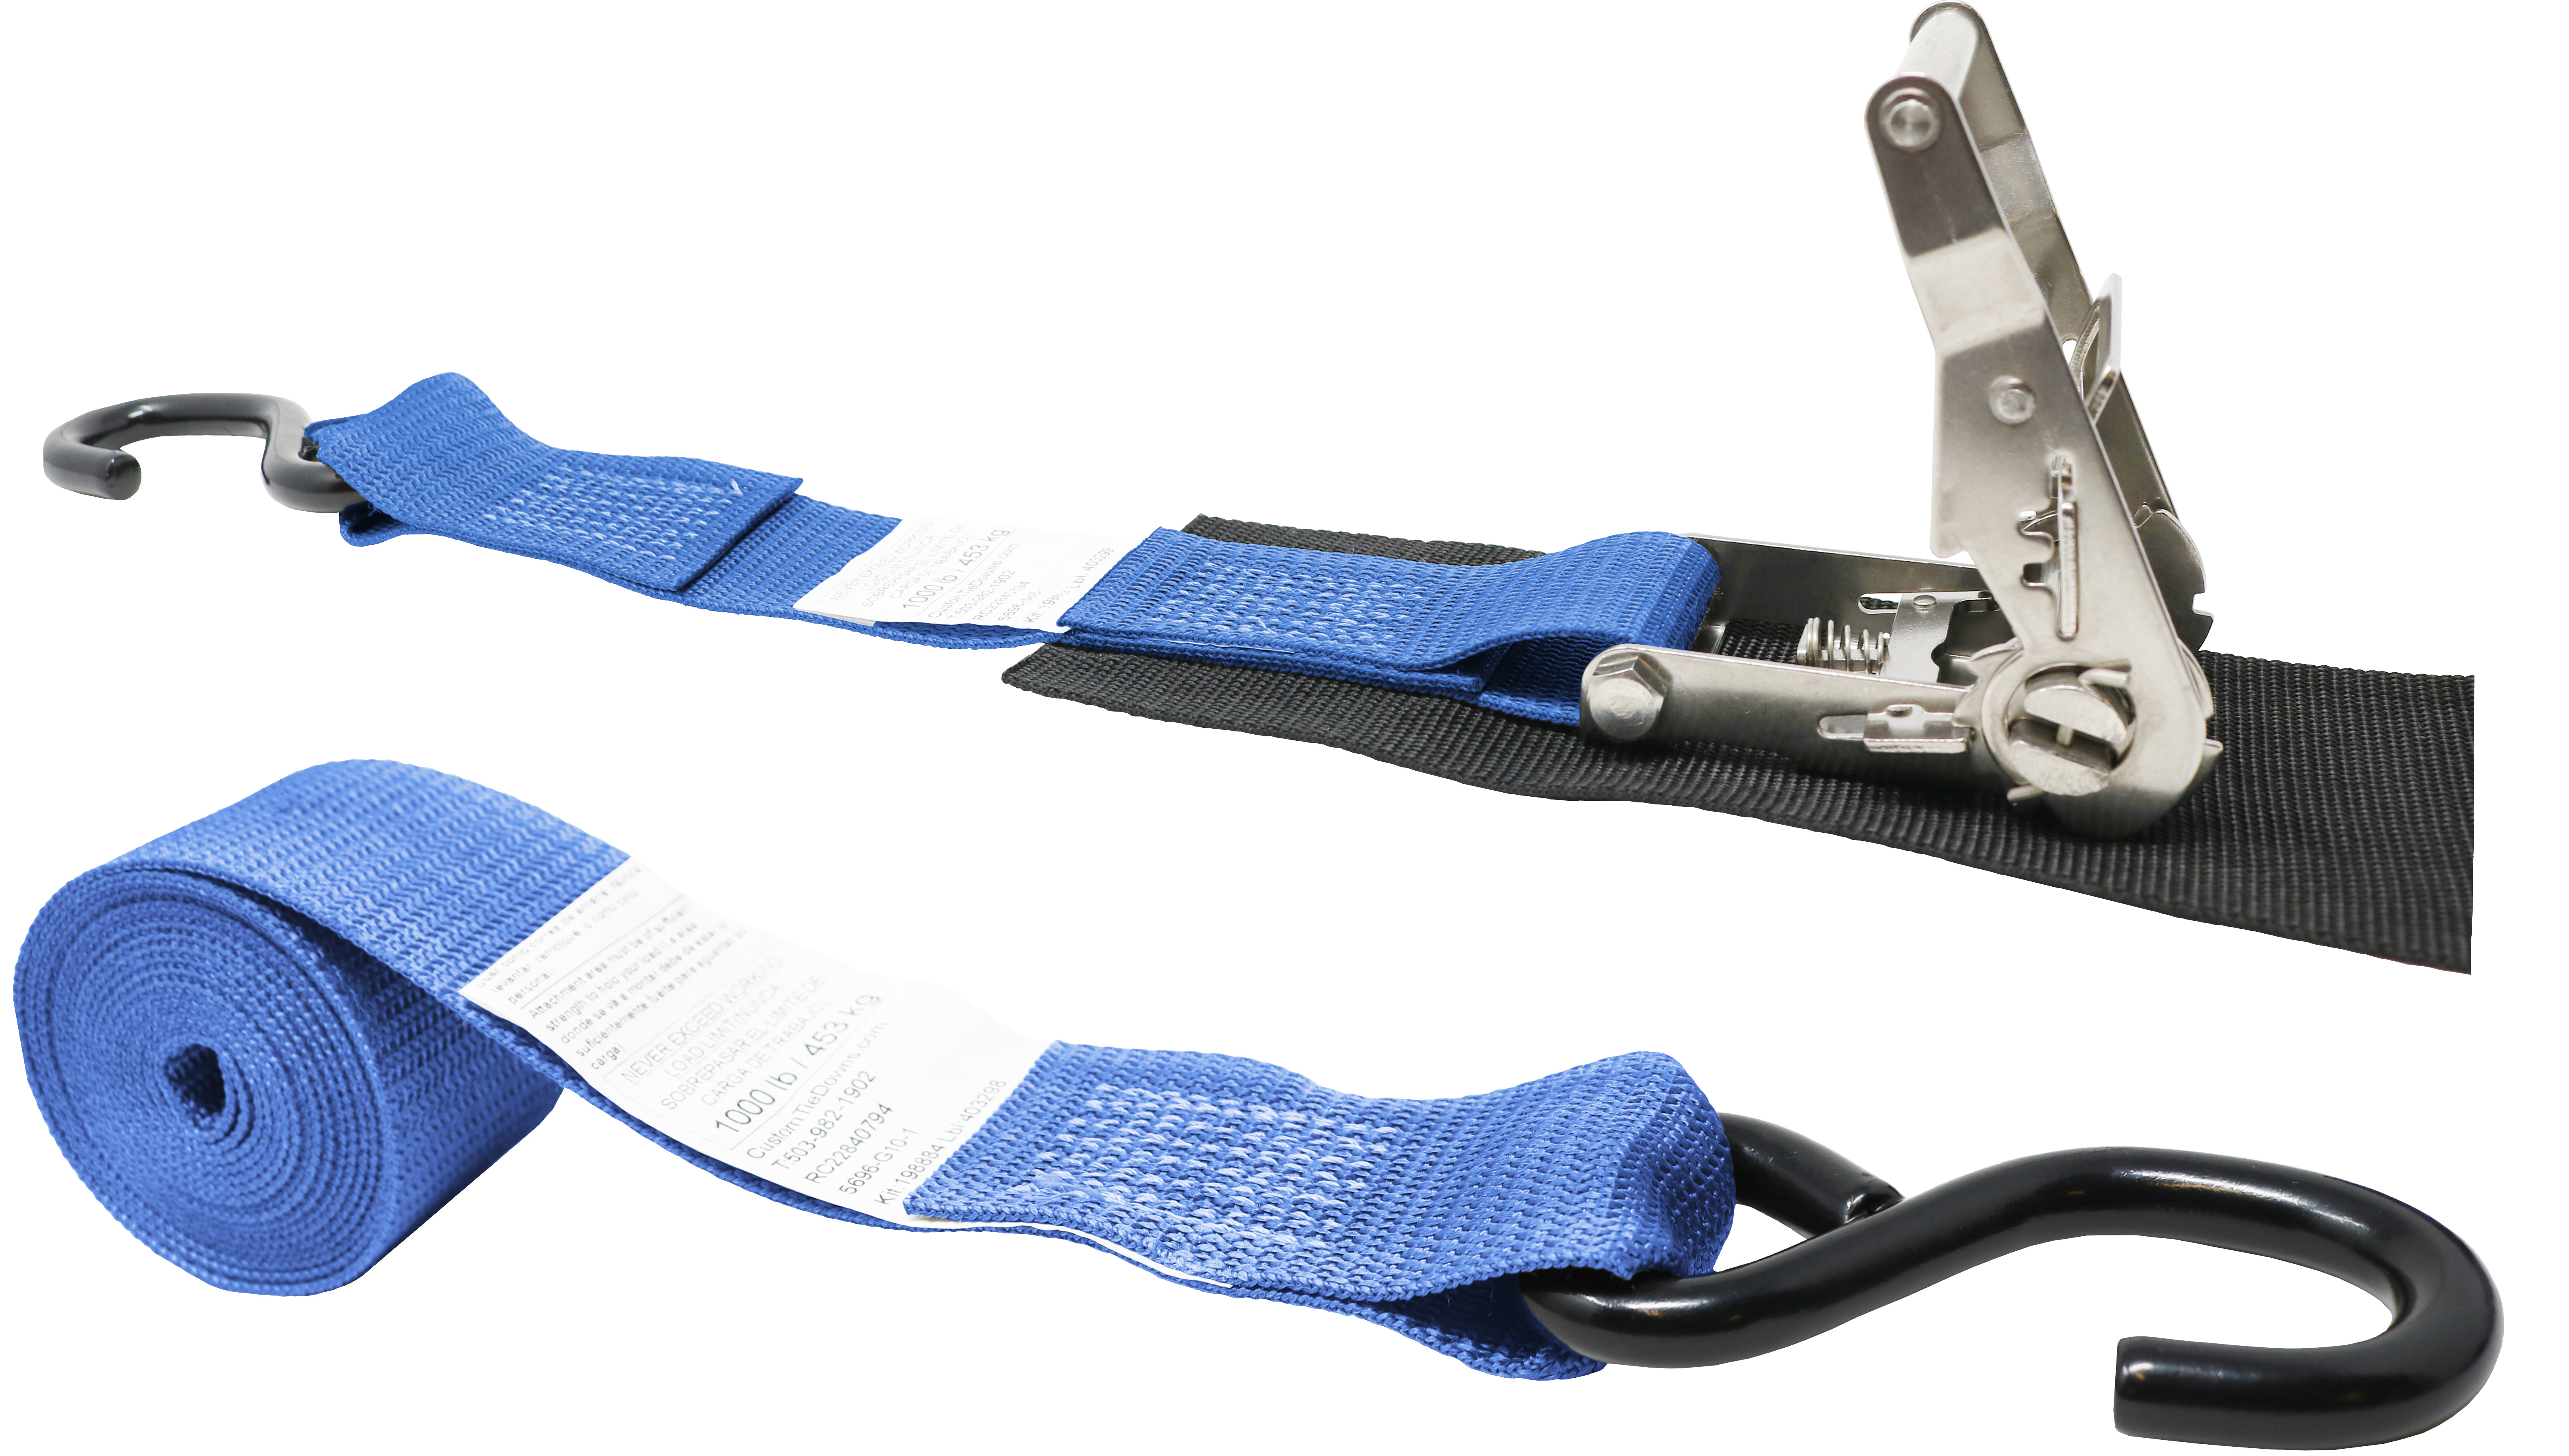 2 Inch Endless Loop Ratchet Strap Stainless Ratchet with Short Wide Handle No Hooks Polyester Tie-Down Webbing. Total Strap Length 10 Ft Endless Loop Protective Pad Under Buckle